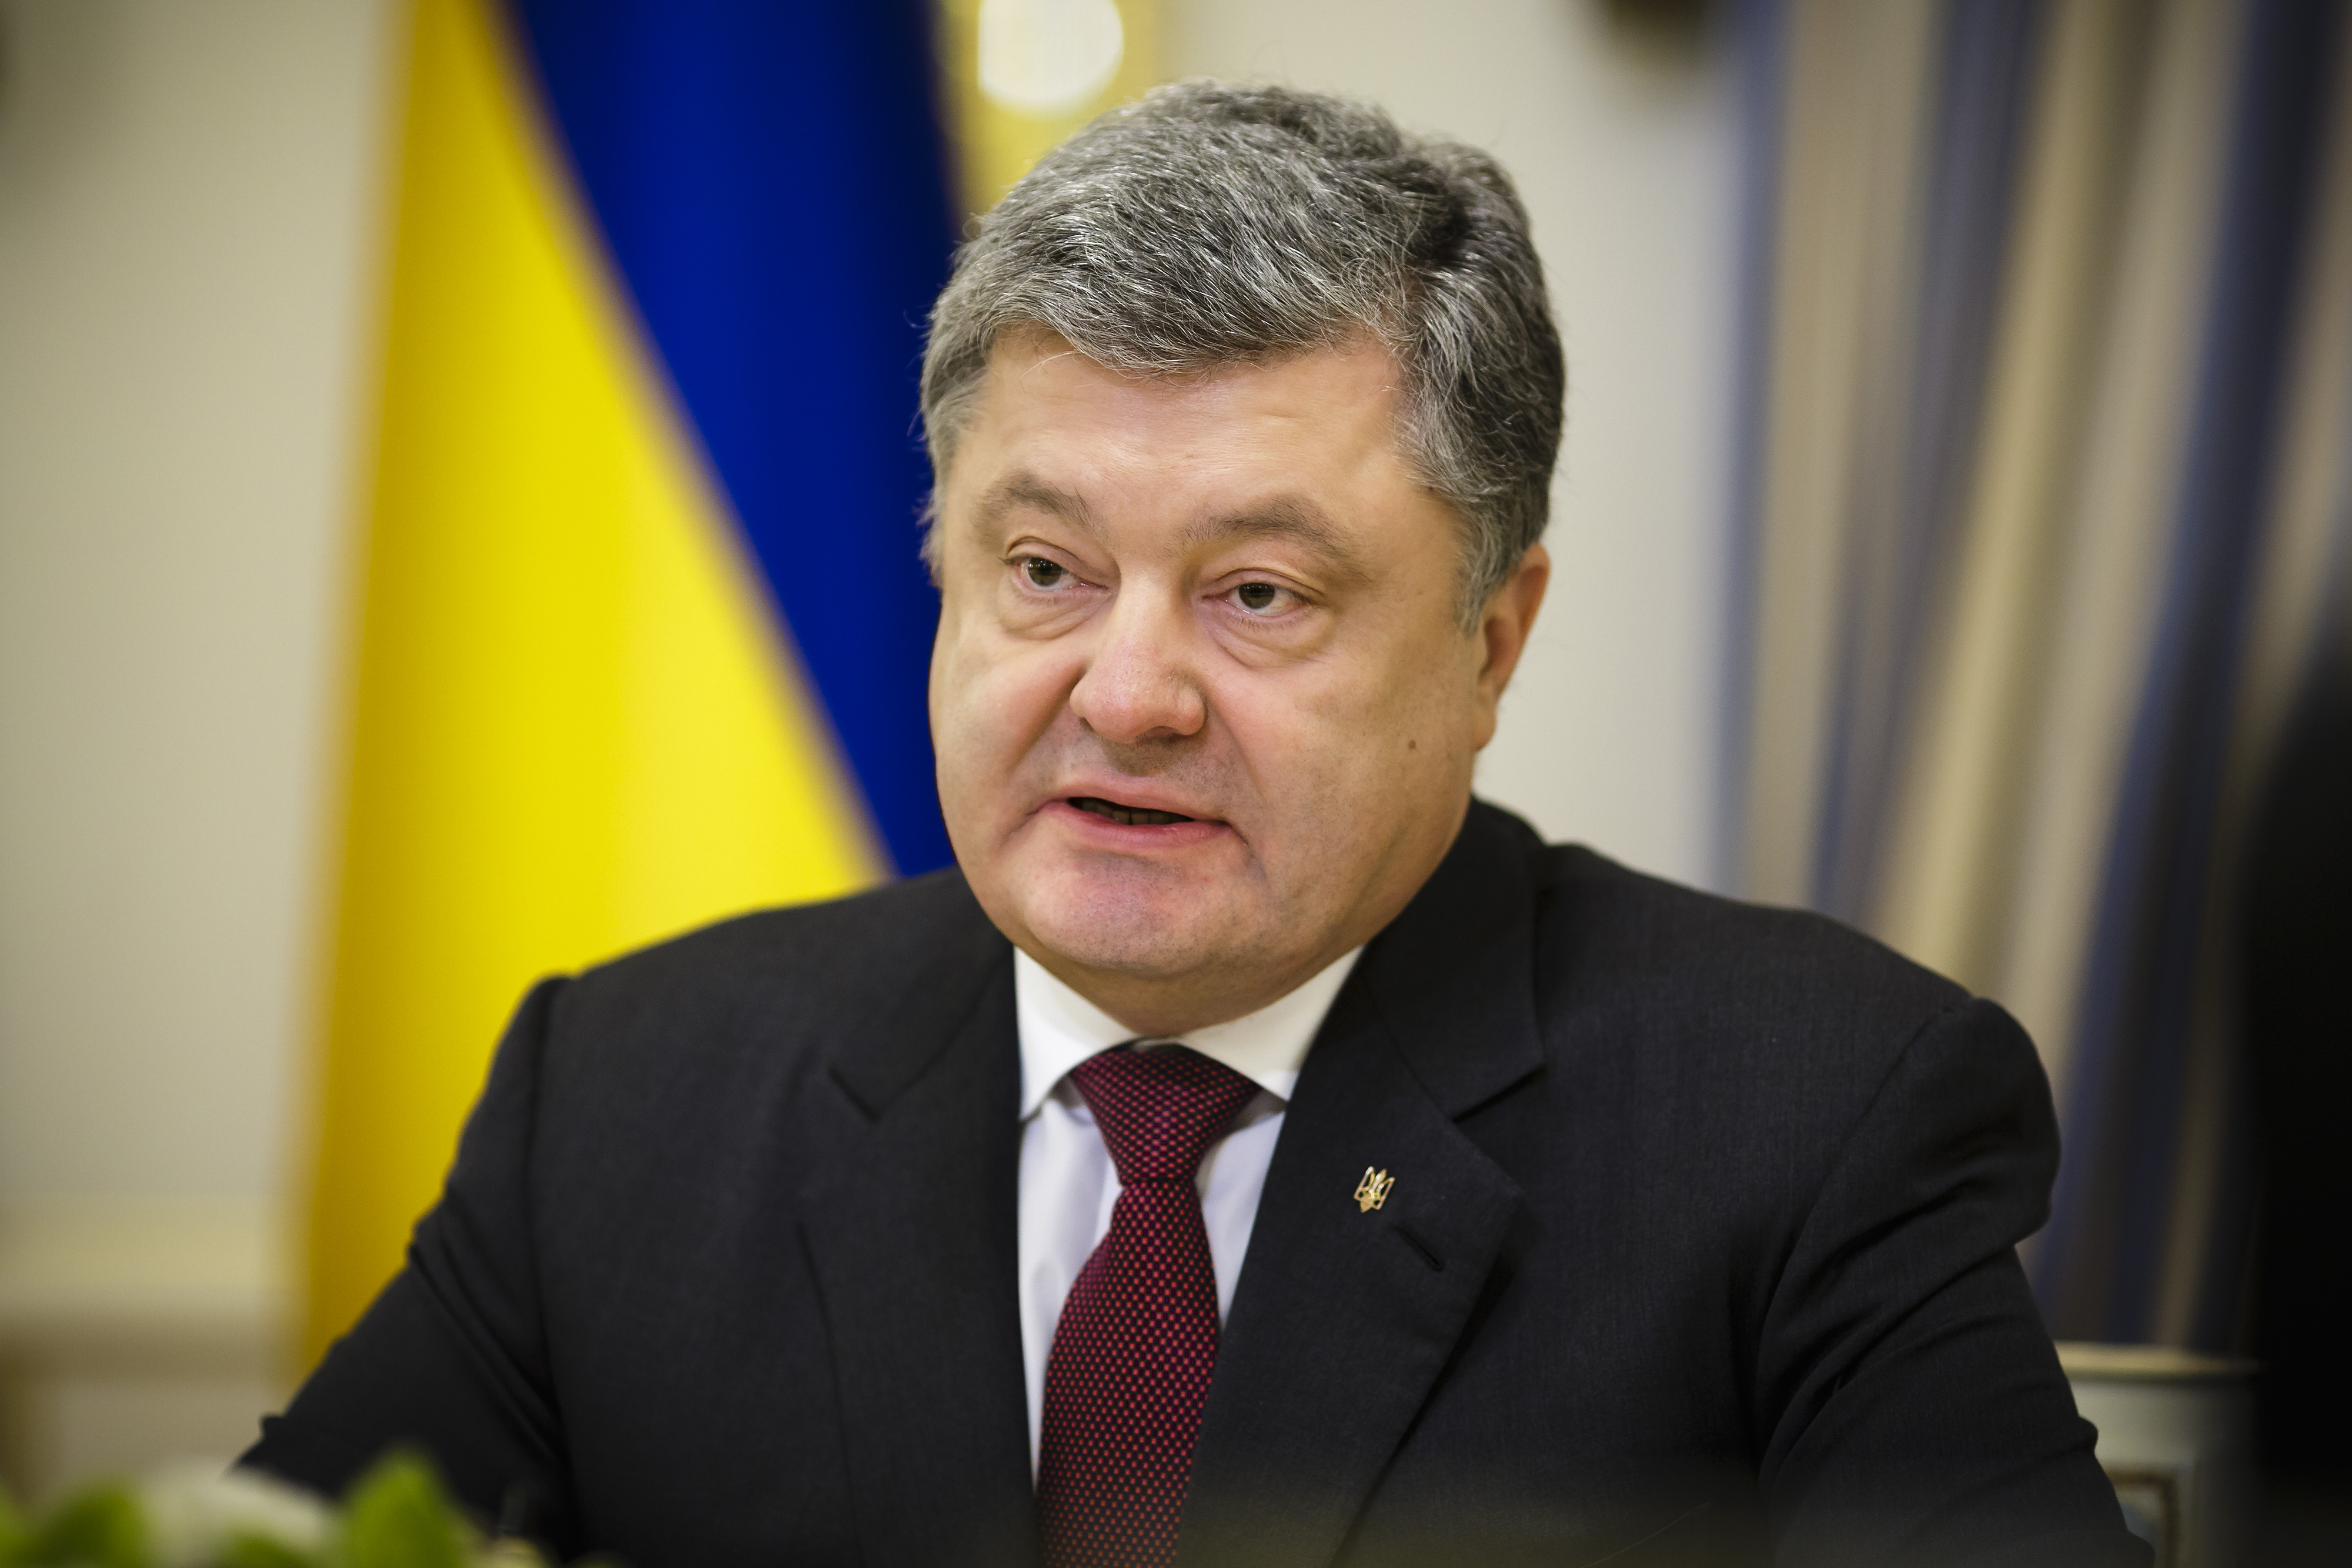 President of Ukraine Petro Poroschenko on March 02, 2017 in Kiev, Ukraine. Gabriel is on a two-day trip to conduct talks with government representatives.